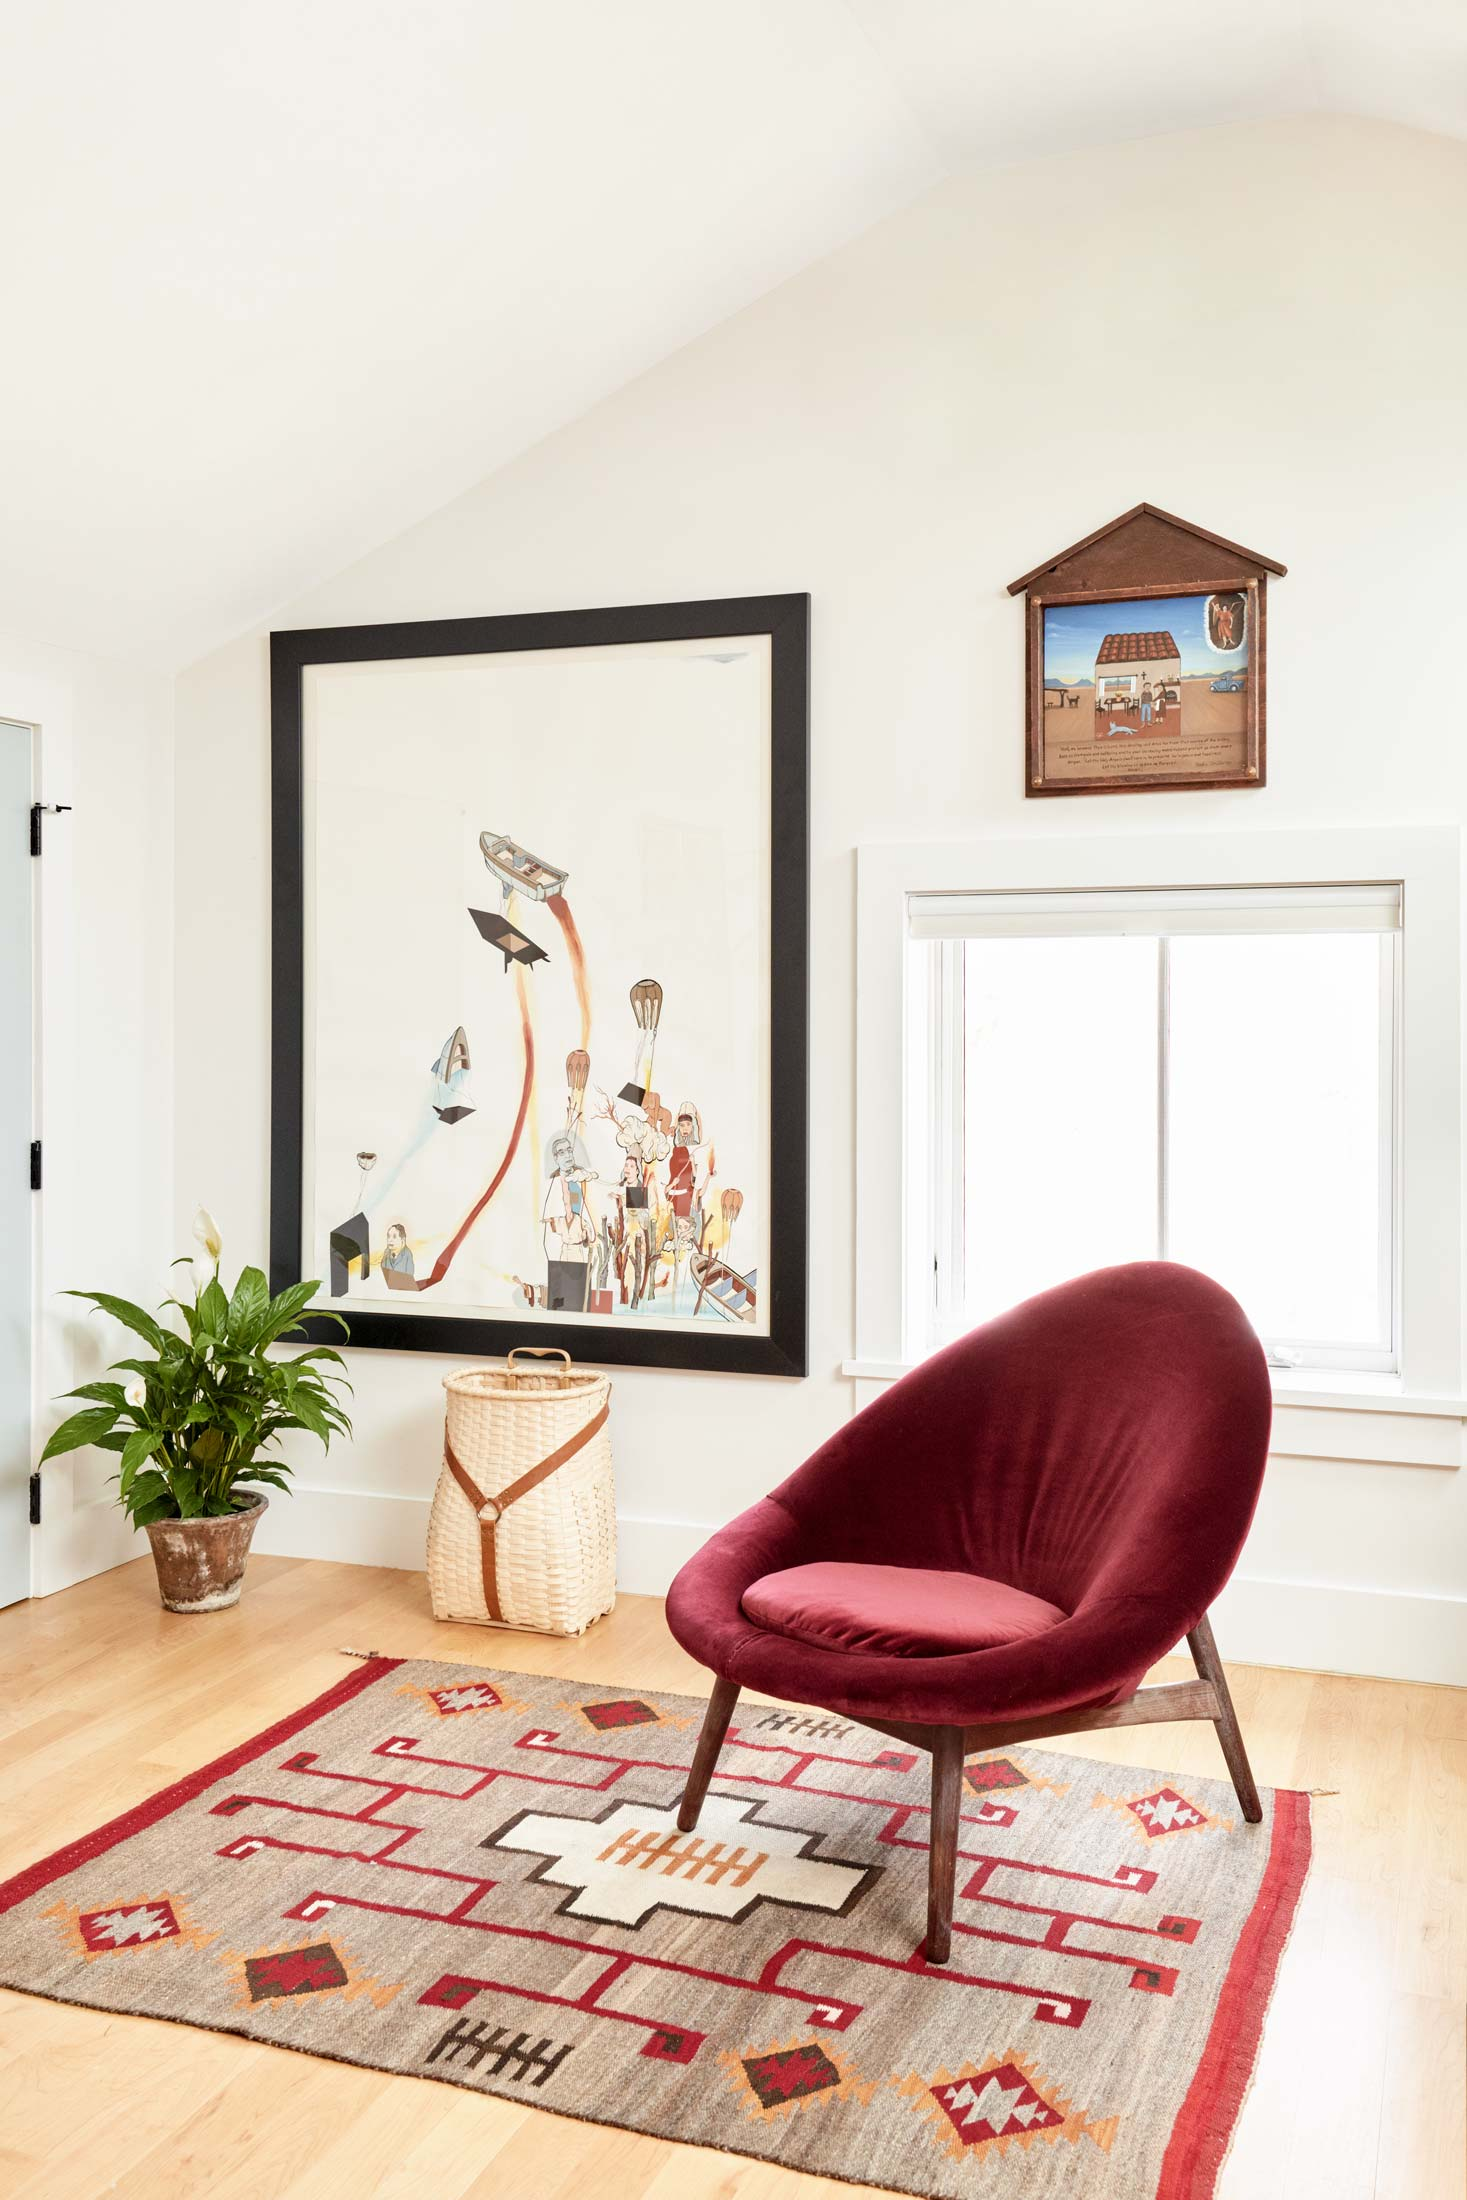 Fischer recovered the midcentury Danish chair in Beverly's study, which sits on a Navajo weaving circa 1930s. In the background is a contemporary pack basket by Wabanaki weaver Gabriel Frey and an ex-voto (over the window) by Neda Contreras with a prayer for protection of the Werber/Goldman home.